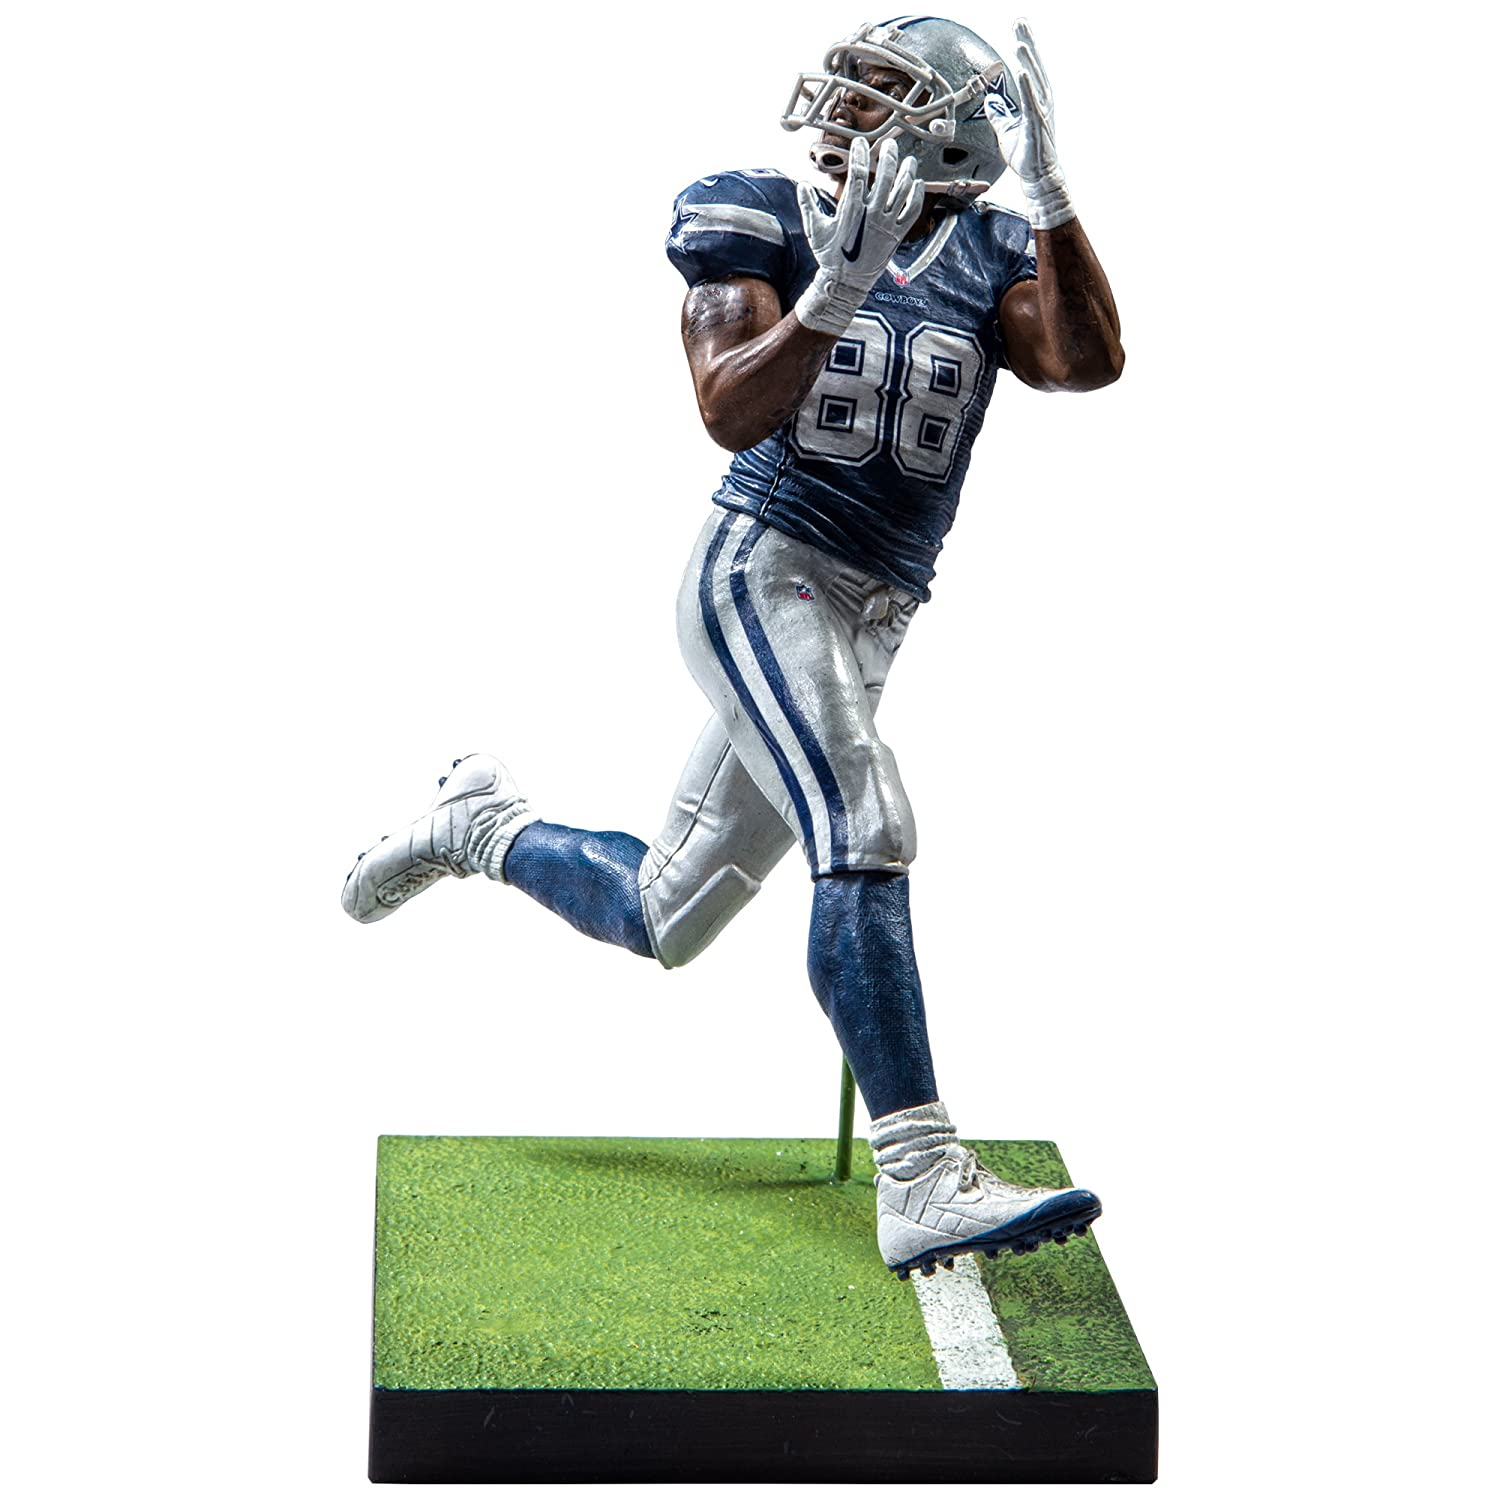 Dallas Cowboys, Dez Bryant Madden NFL 17 Series 3 Ultimate Team Figure Mcfarlane Toys 75716-3